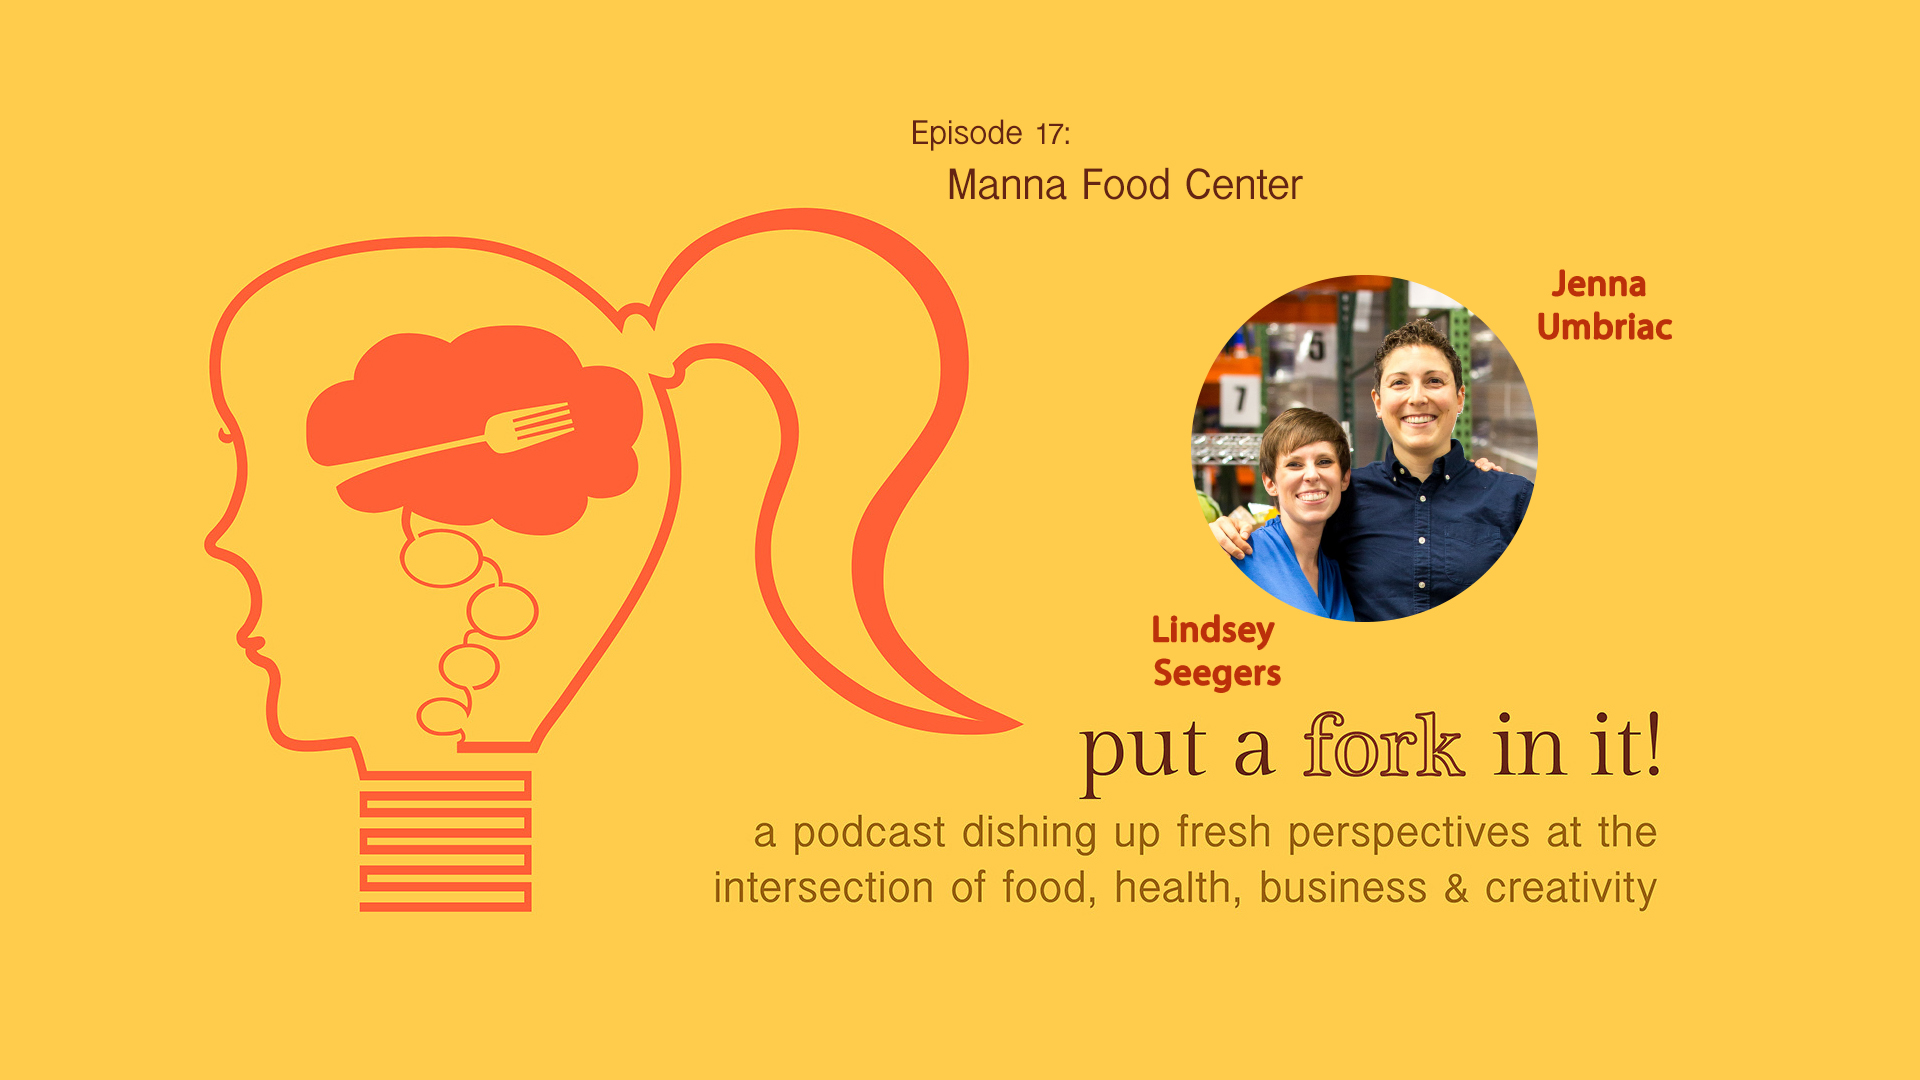 PAFII Episode 17: Lindsey Seegers & Jenna Umbriac, Manna Food Center